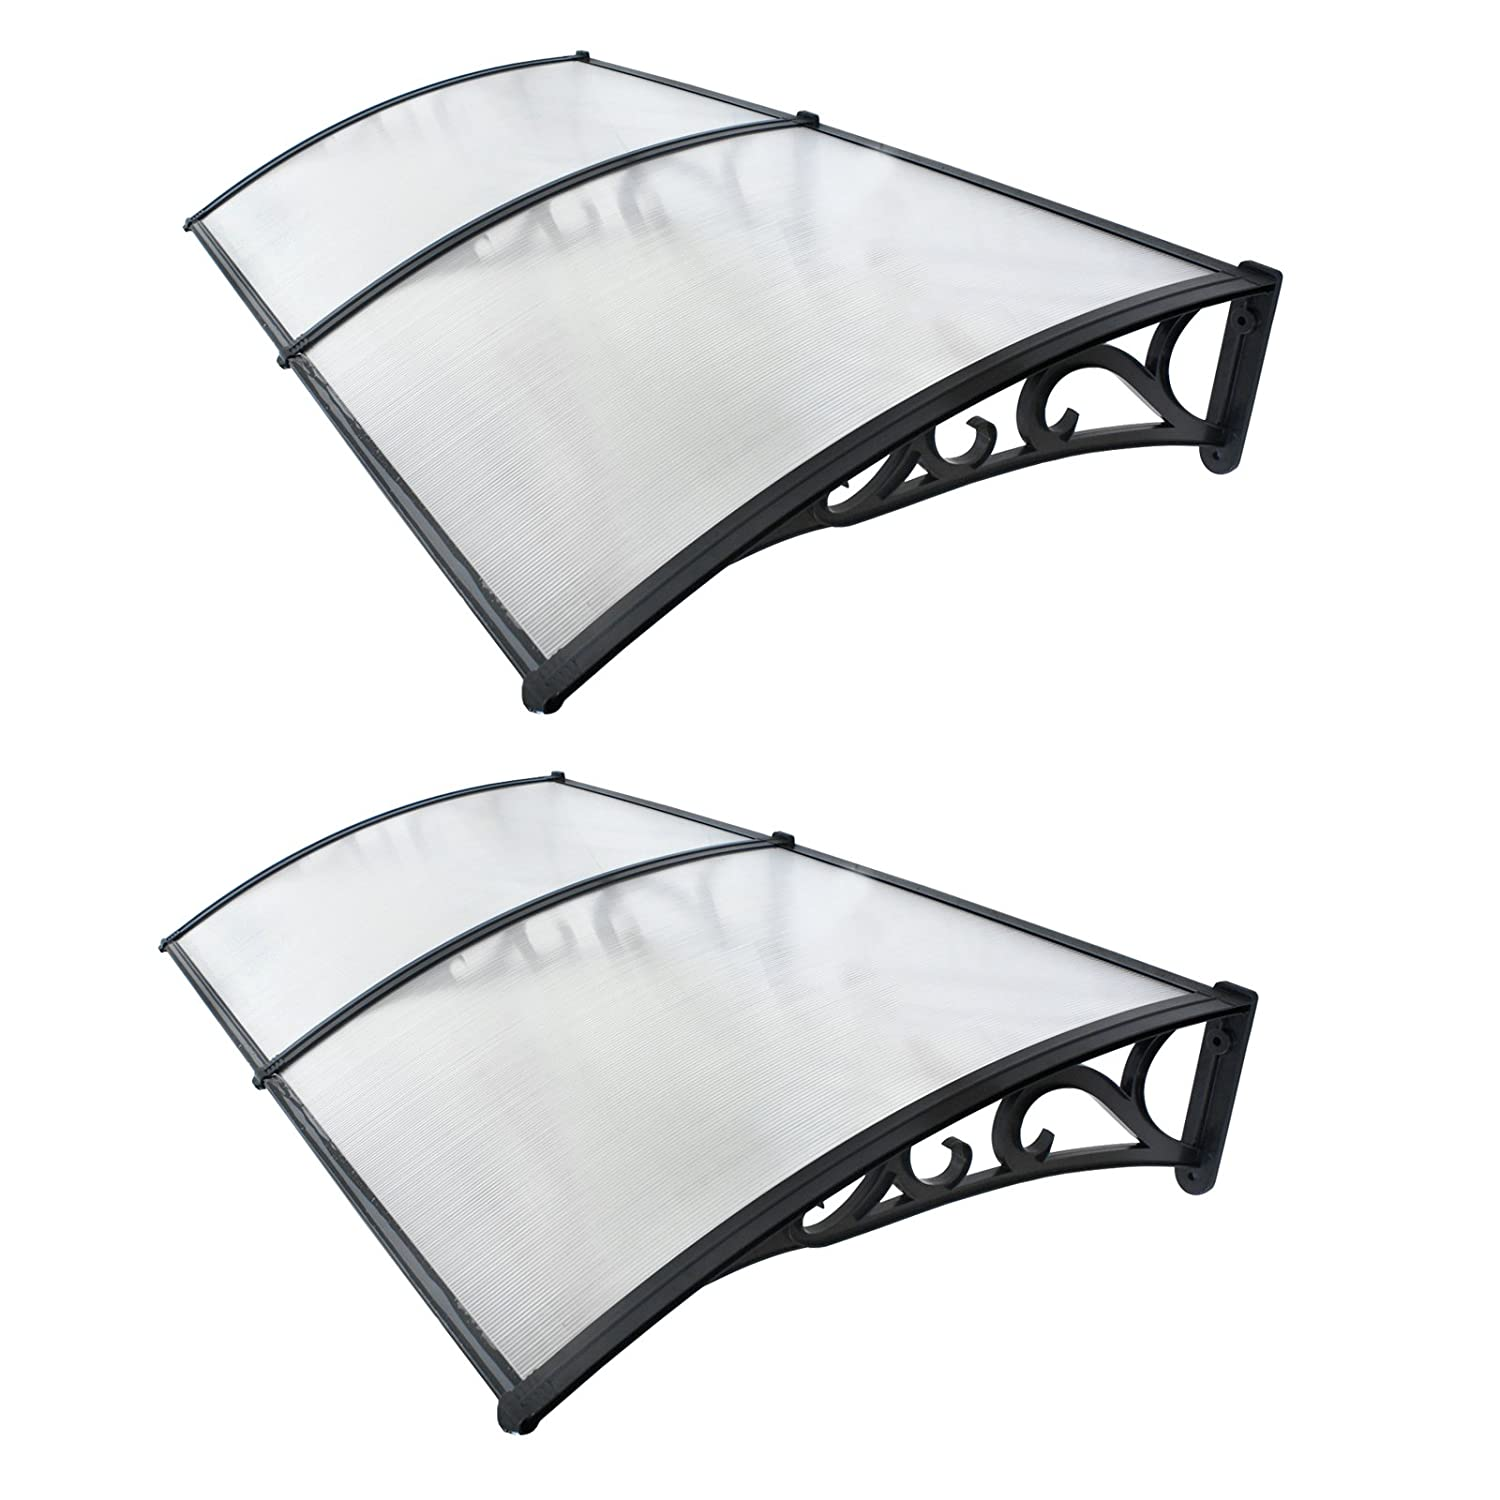 Smartxchoices 40 x80 Polycarbonate Windows Doors Awning Cover Sun Shade Shelter Rain Snow Cover Overhead Canopy 2PCS